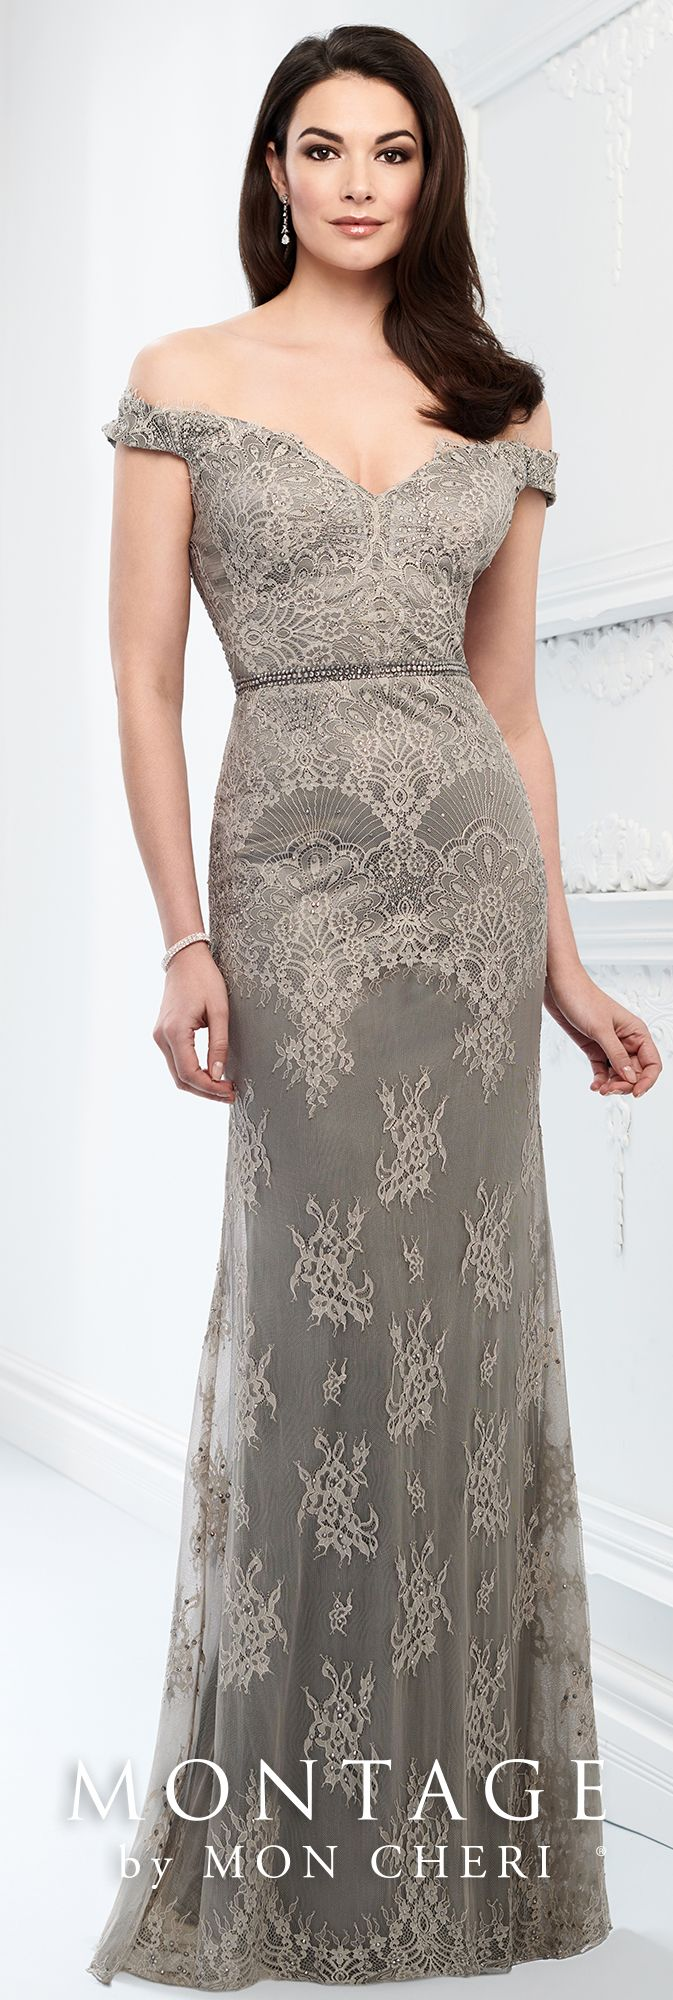 49744efa998 GRAY SIZE 10 Montage By Mon Cheri 218917 - A look that will never go out of  style